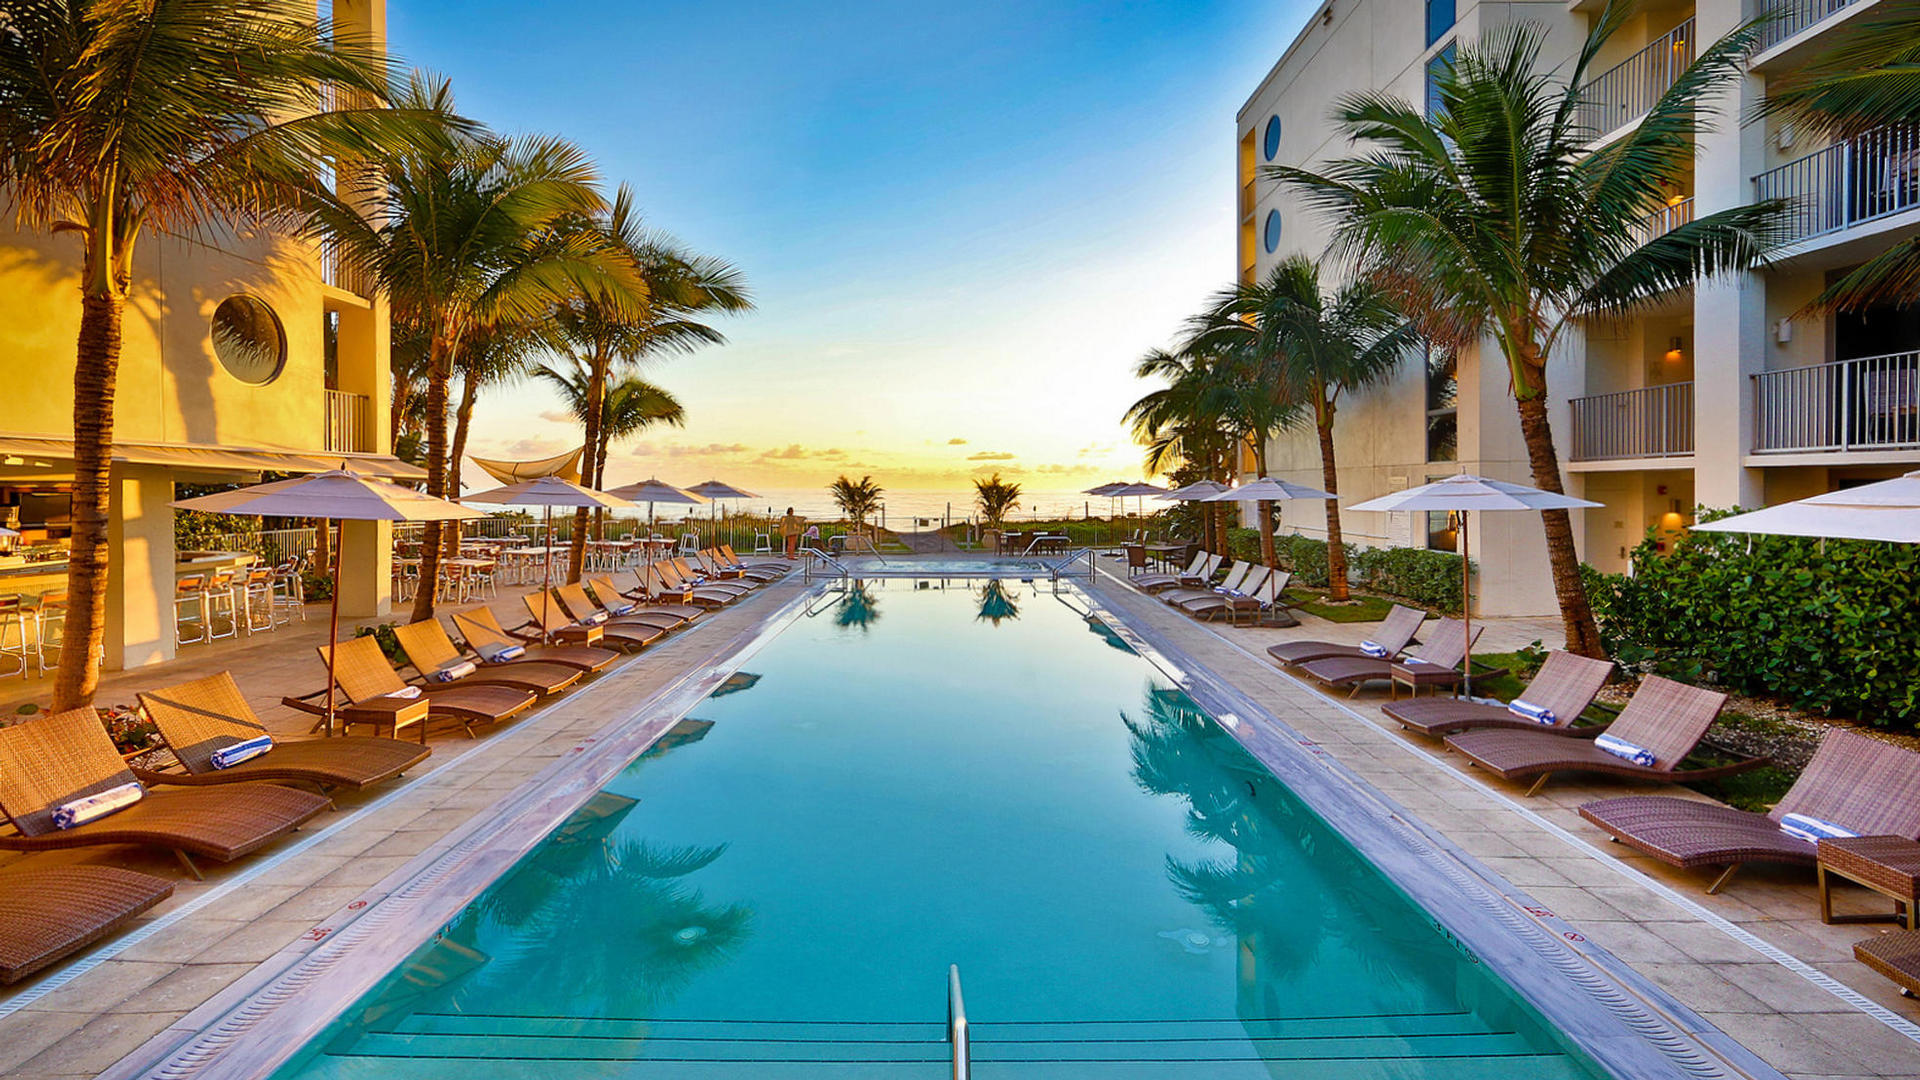 dog friendly places in florida hotels